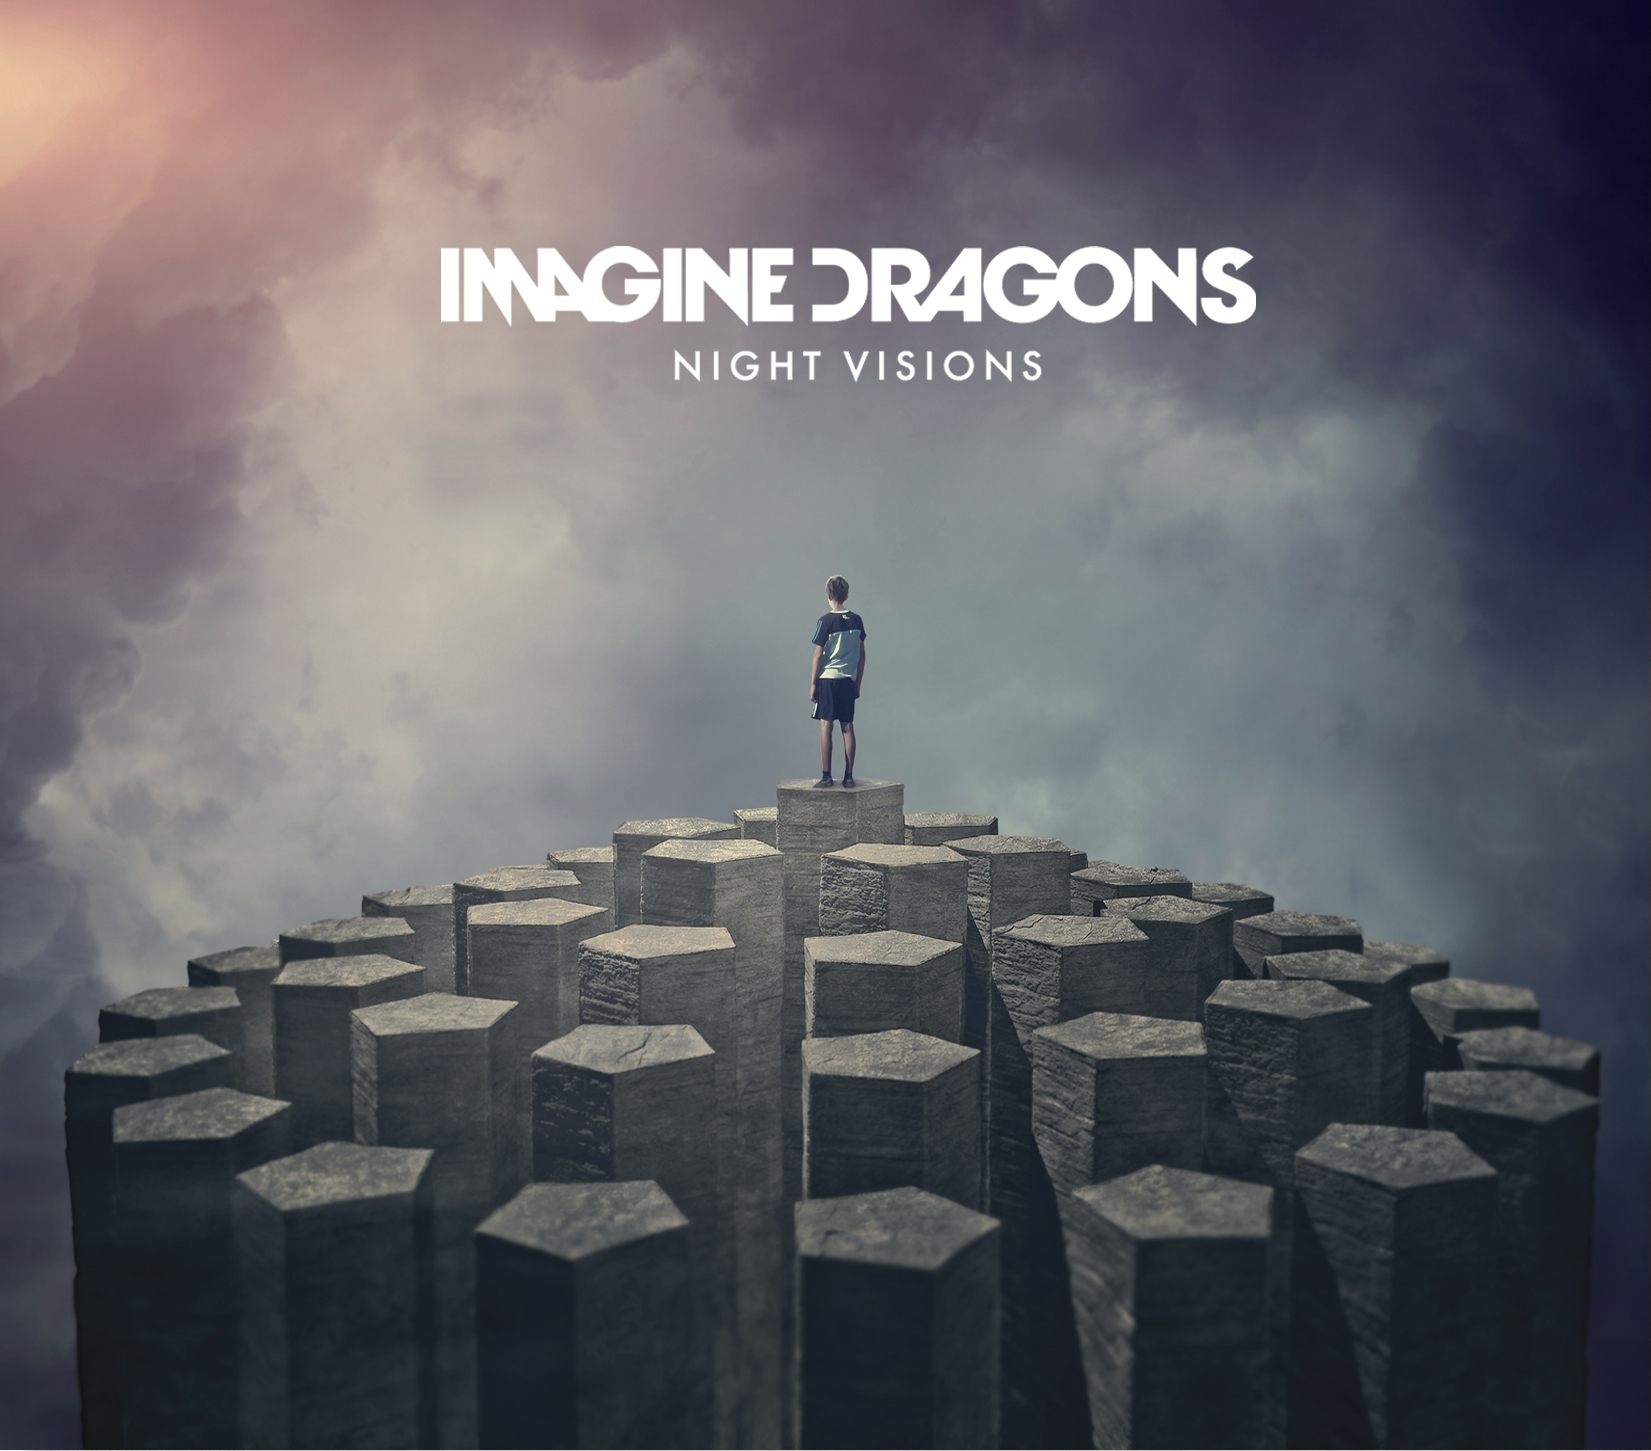 187 imagine dragons � night visions review and preview